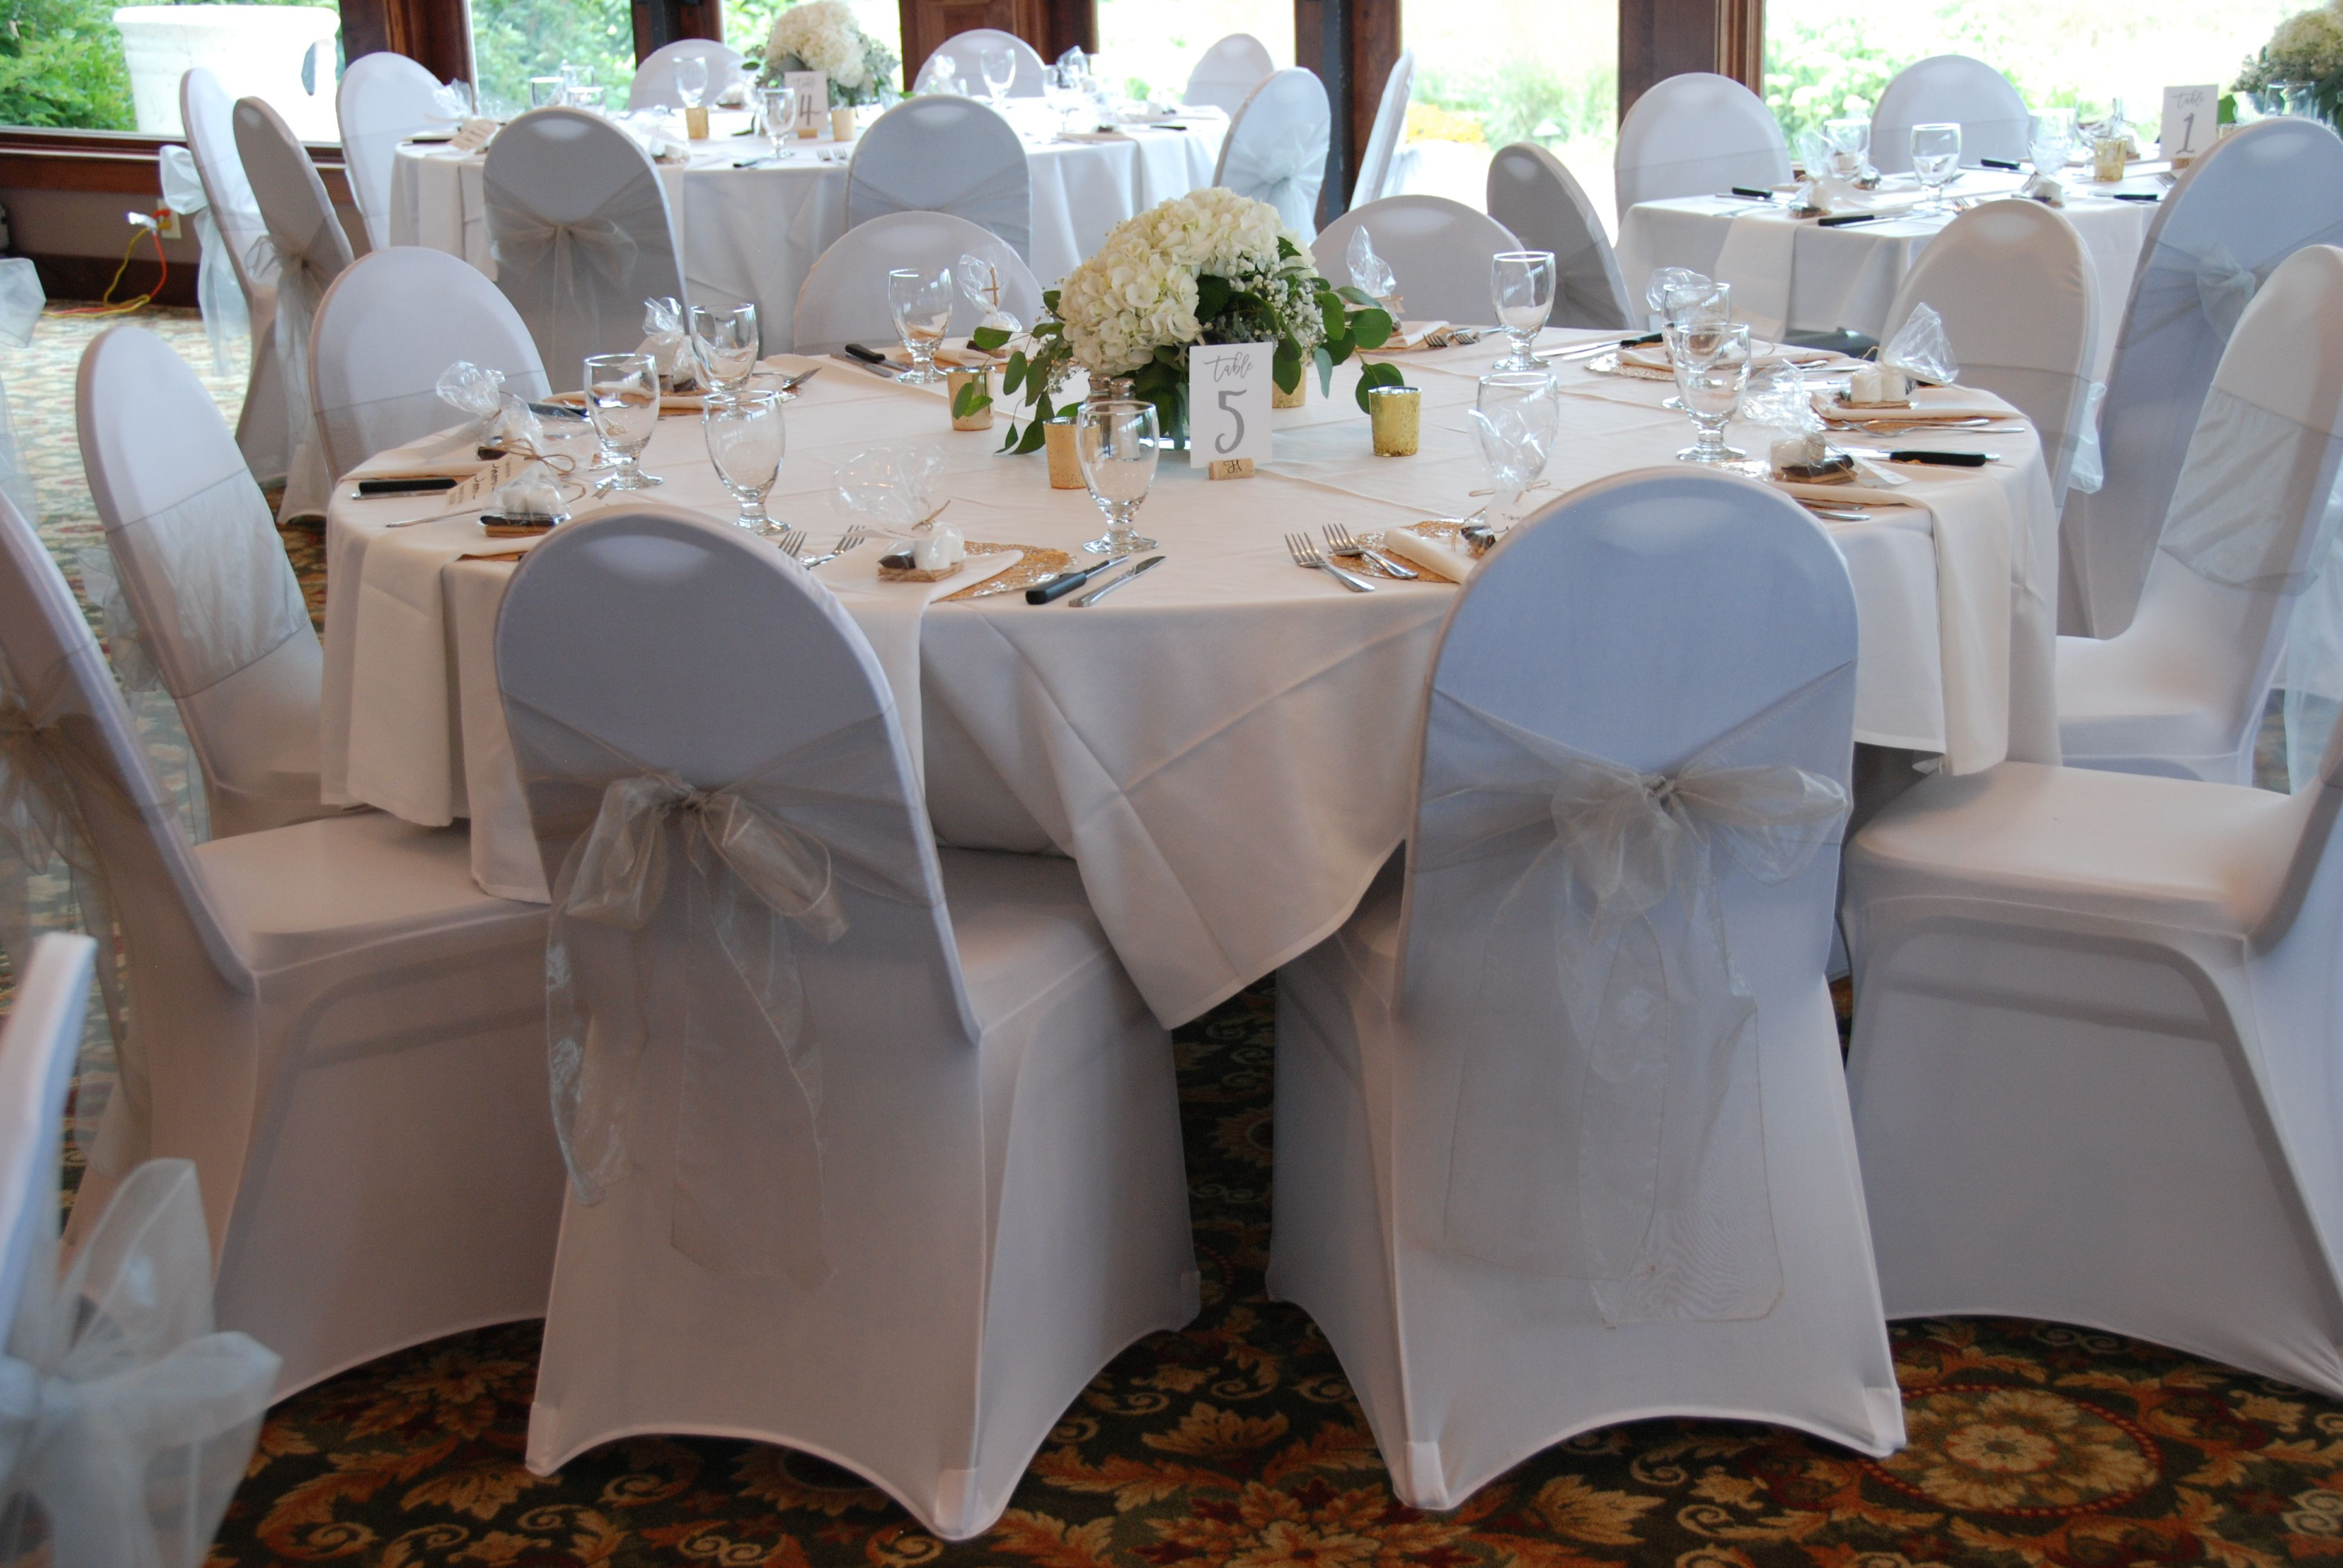 Wedding Reception Decor White Chair Covers White Spandex Chair